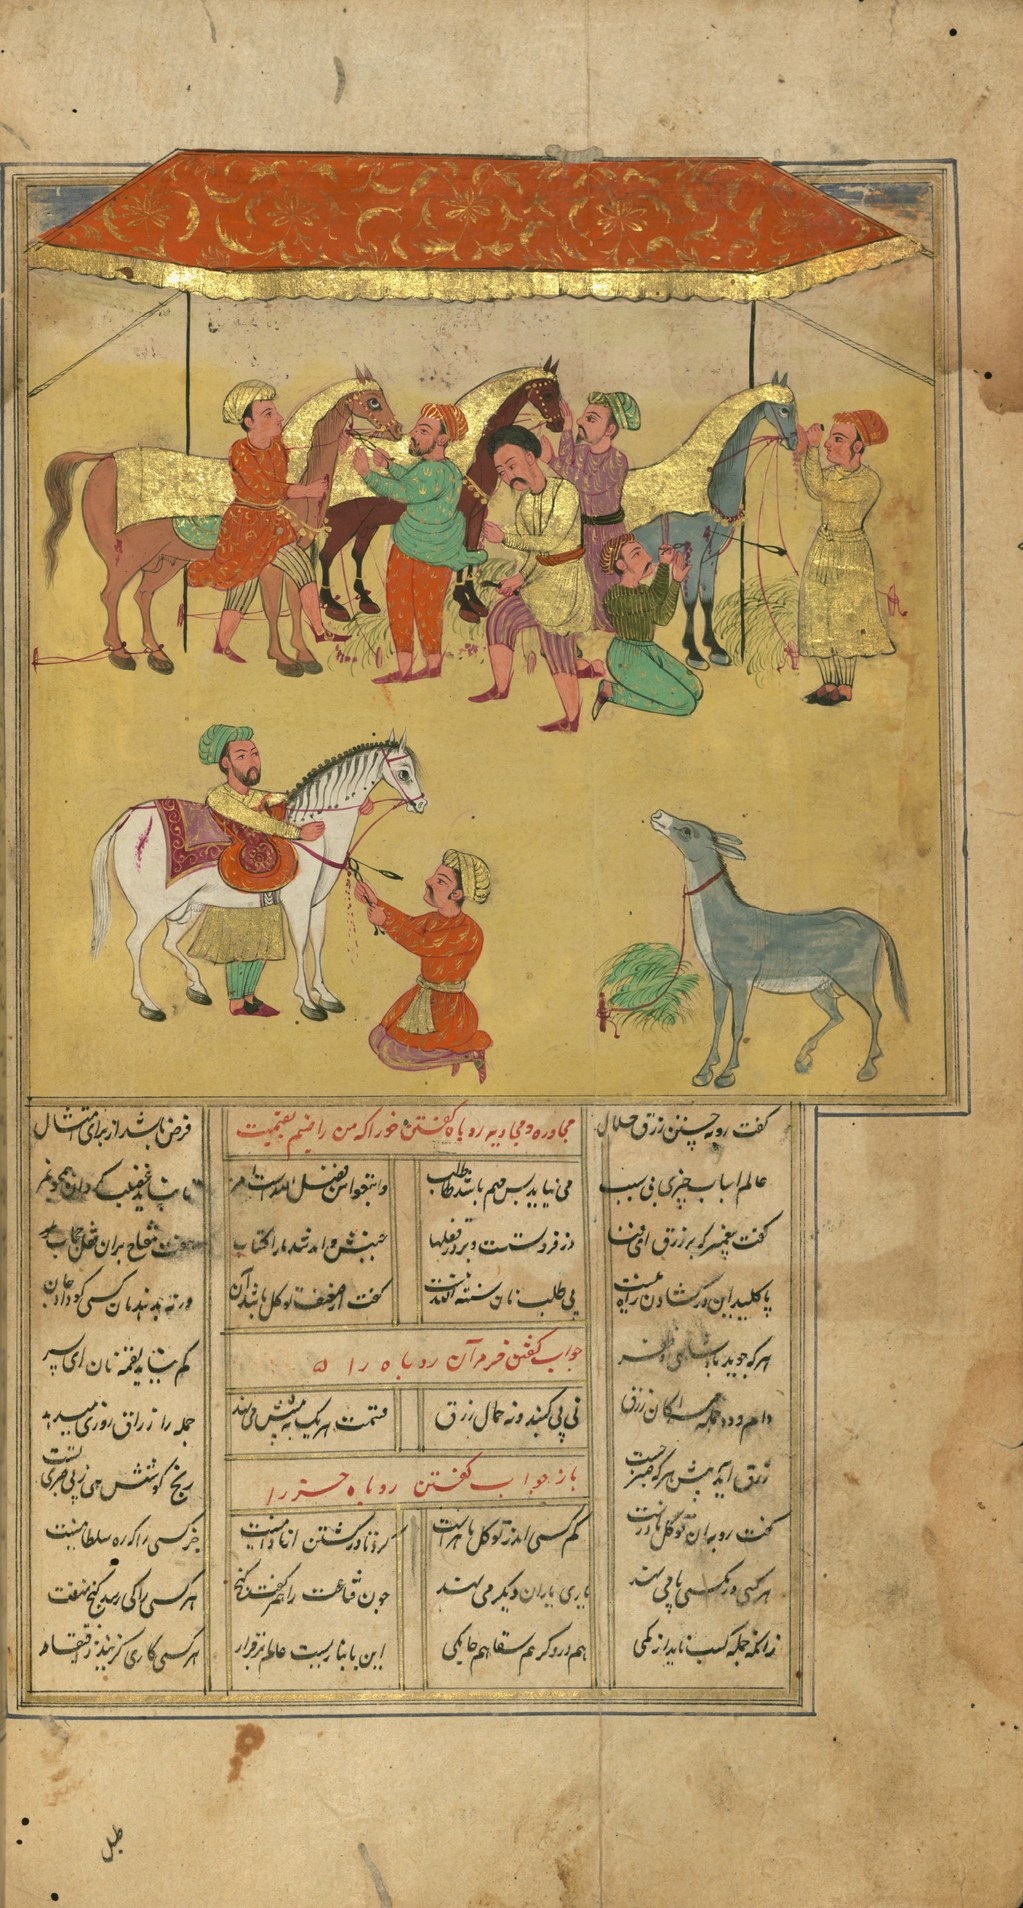 Ali-The-Erasure-of-Islam-from-the-Poetry-of-Rumi